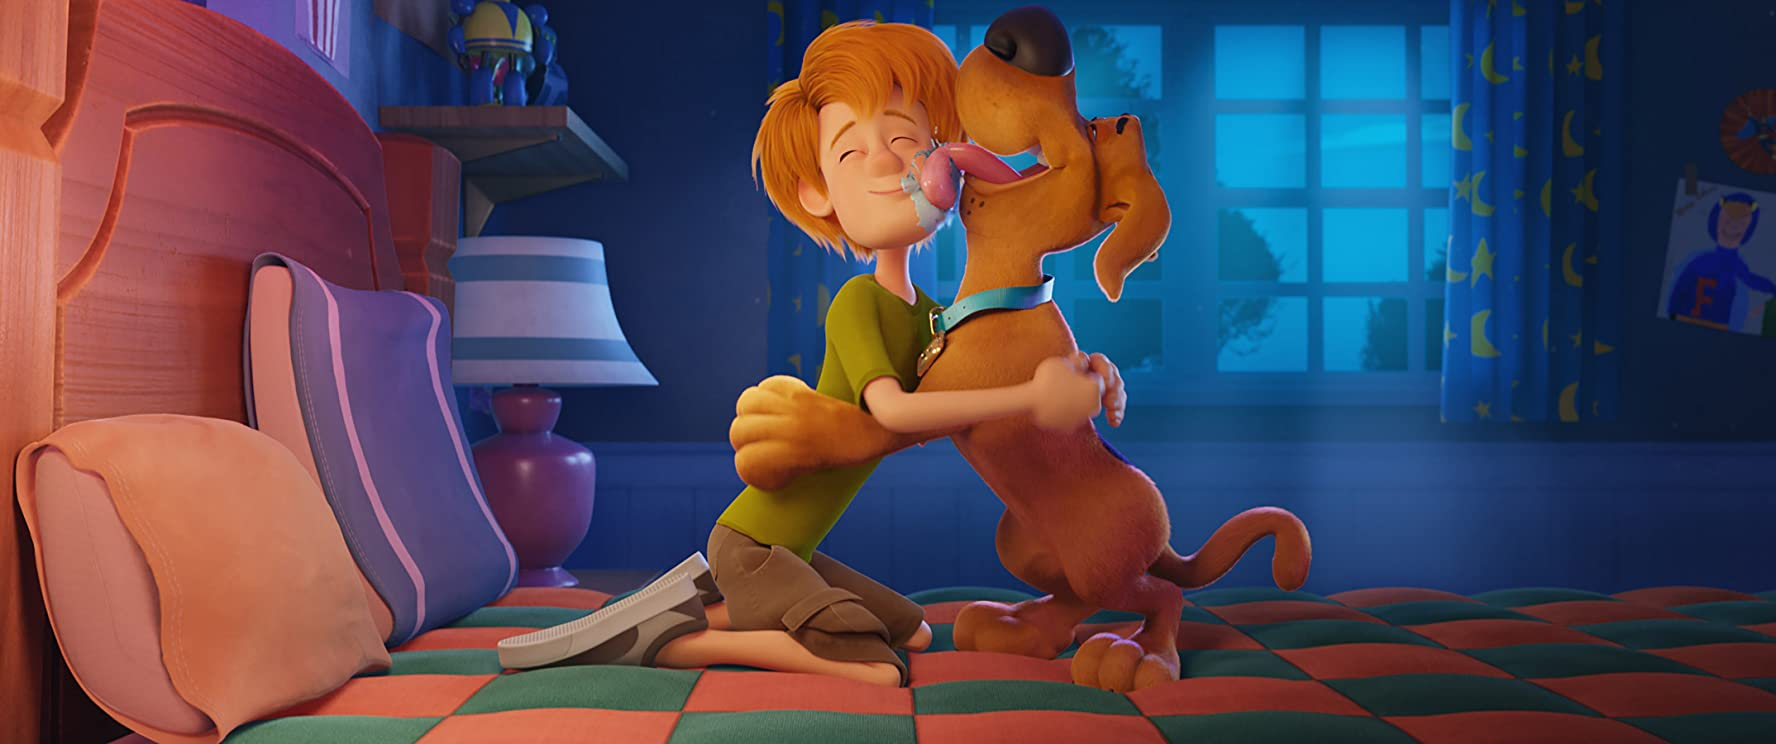 Scoob! is exciting enough to entertain kids with just enough winking cleverness aimed at adults so they're able to sit through with the little ones.